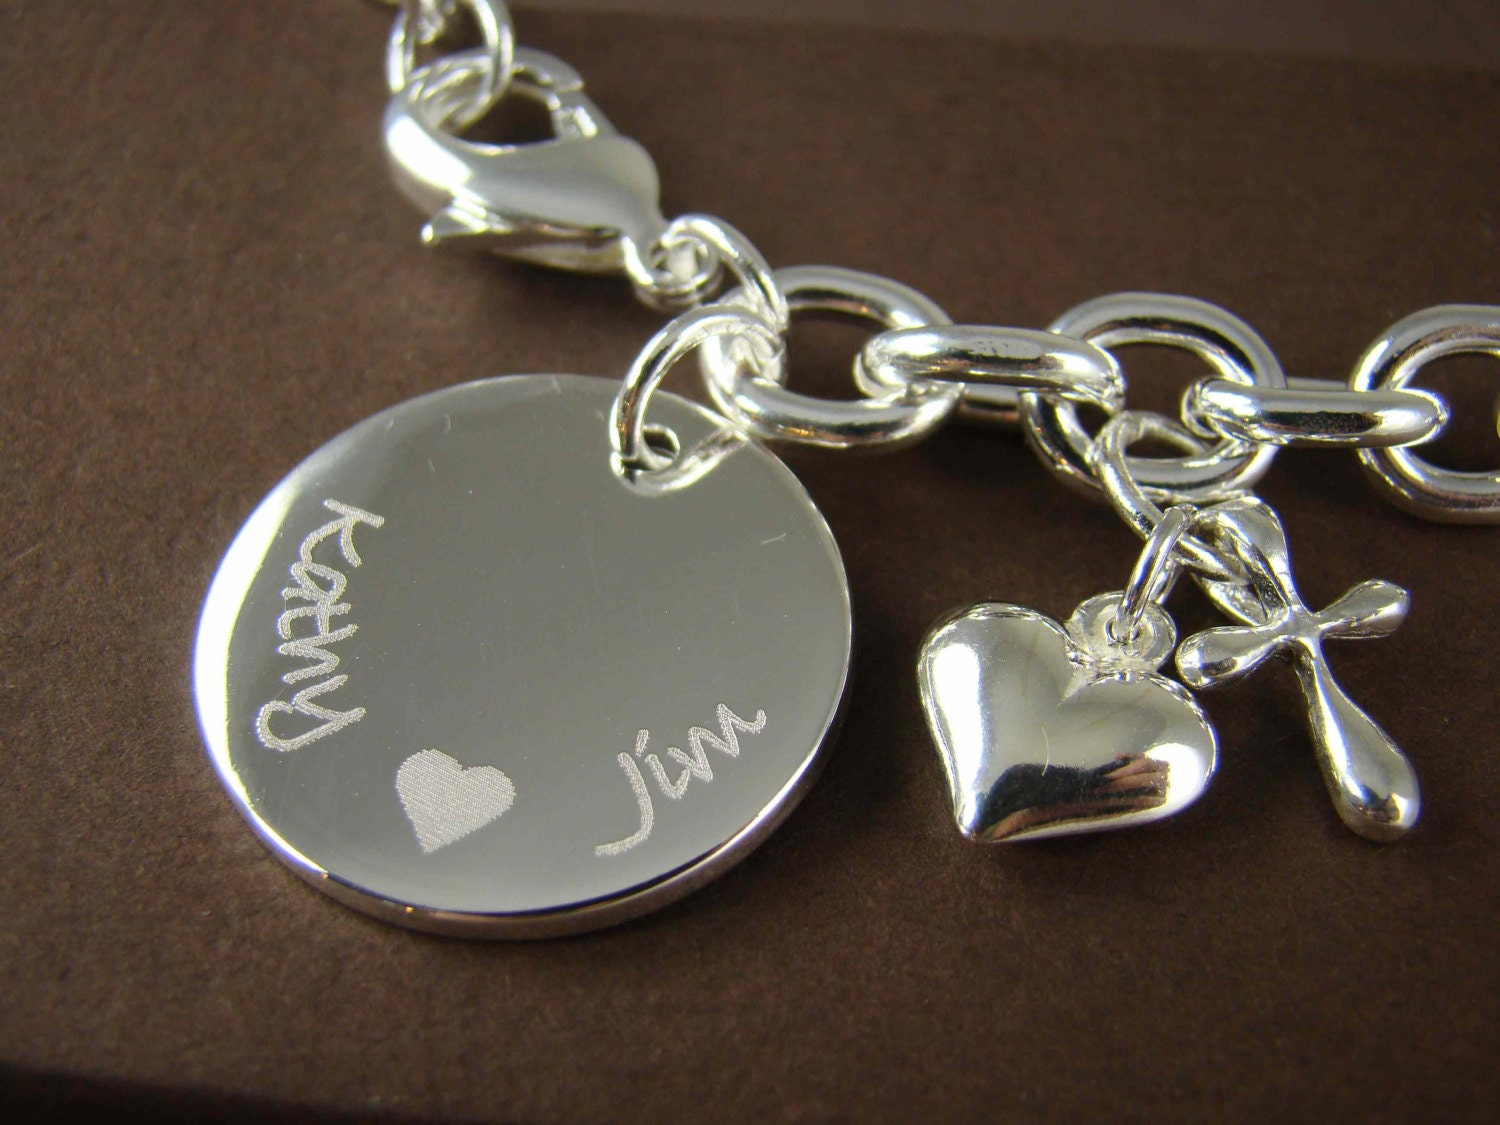 Engraving Wedding Gifts: Personalized Wedding Gift For Her Custom Engraved Bracelet